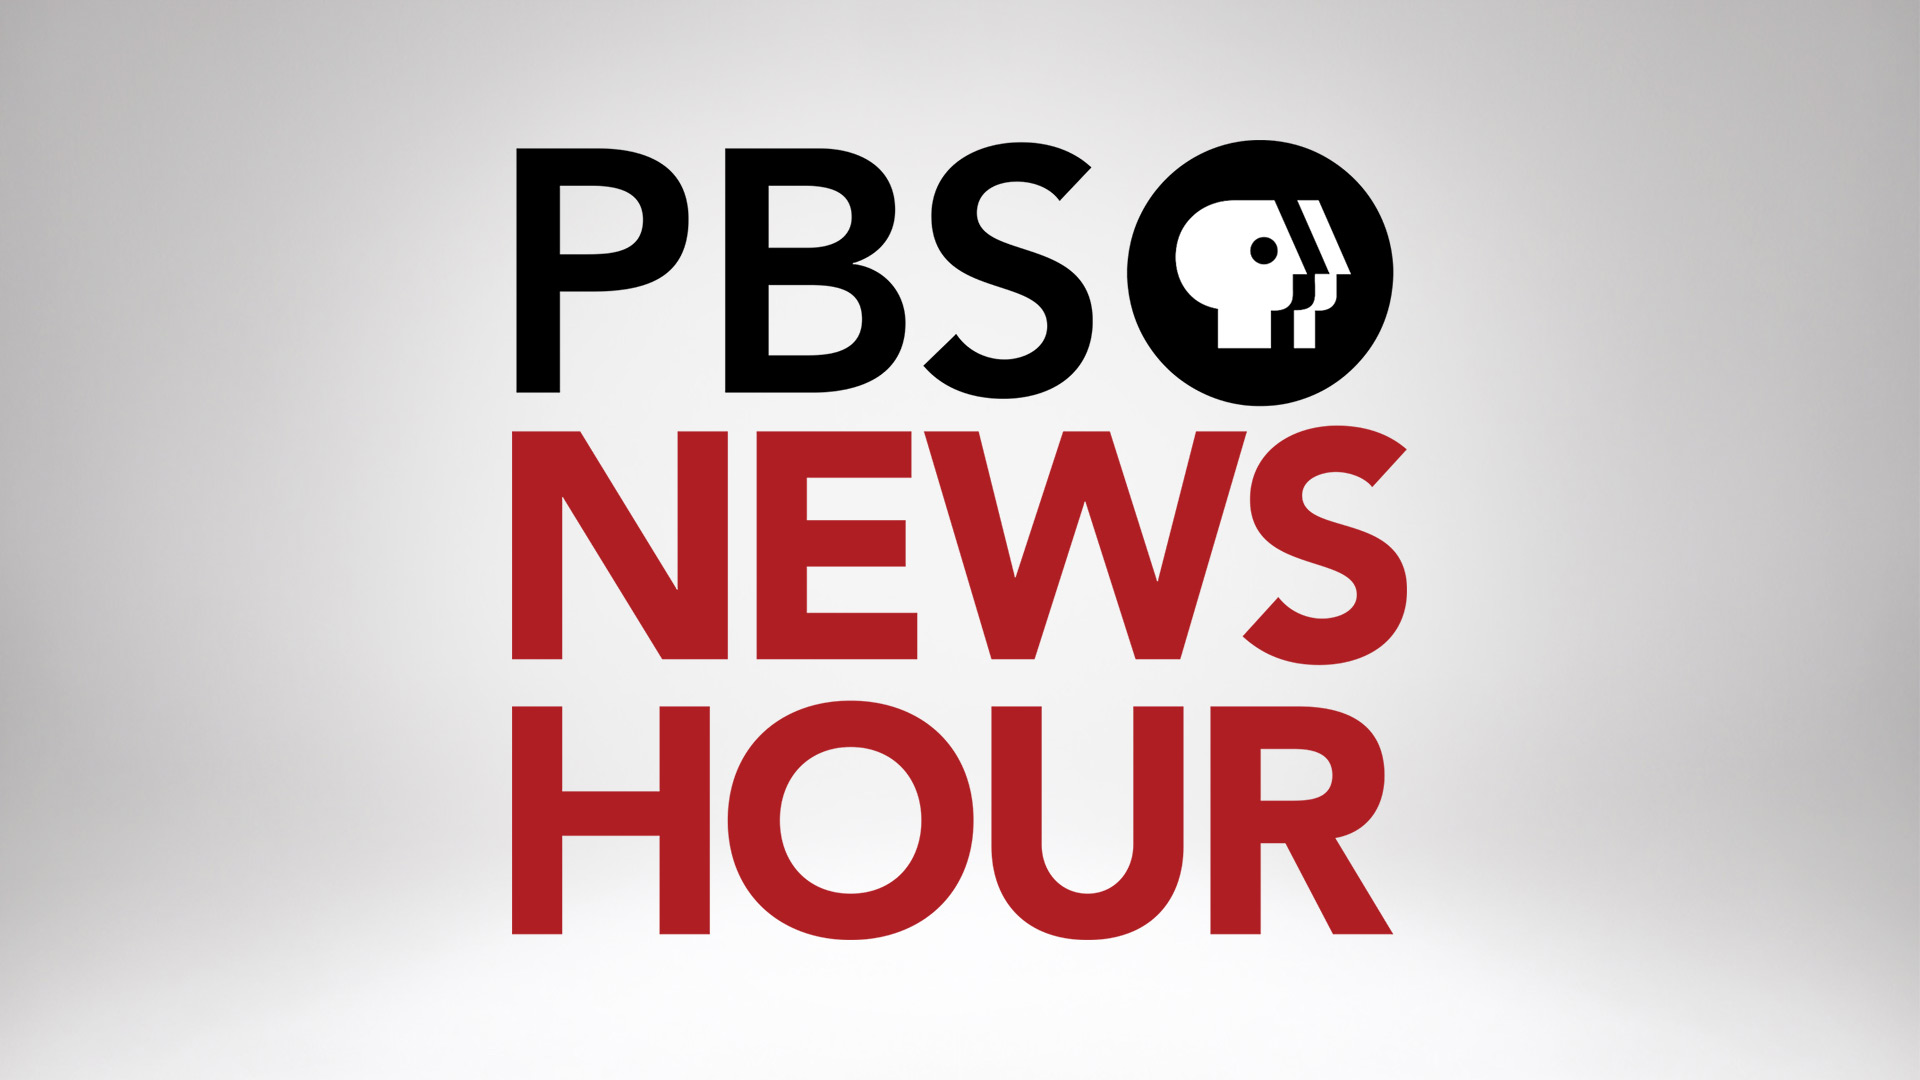 PBS NewsHour airs weeknights at 7 p.m. on PBS 6.